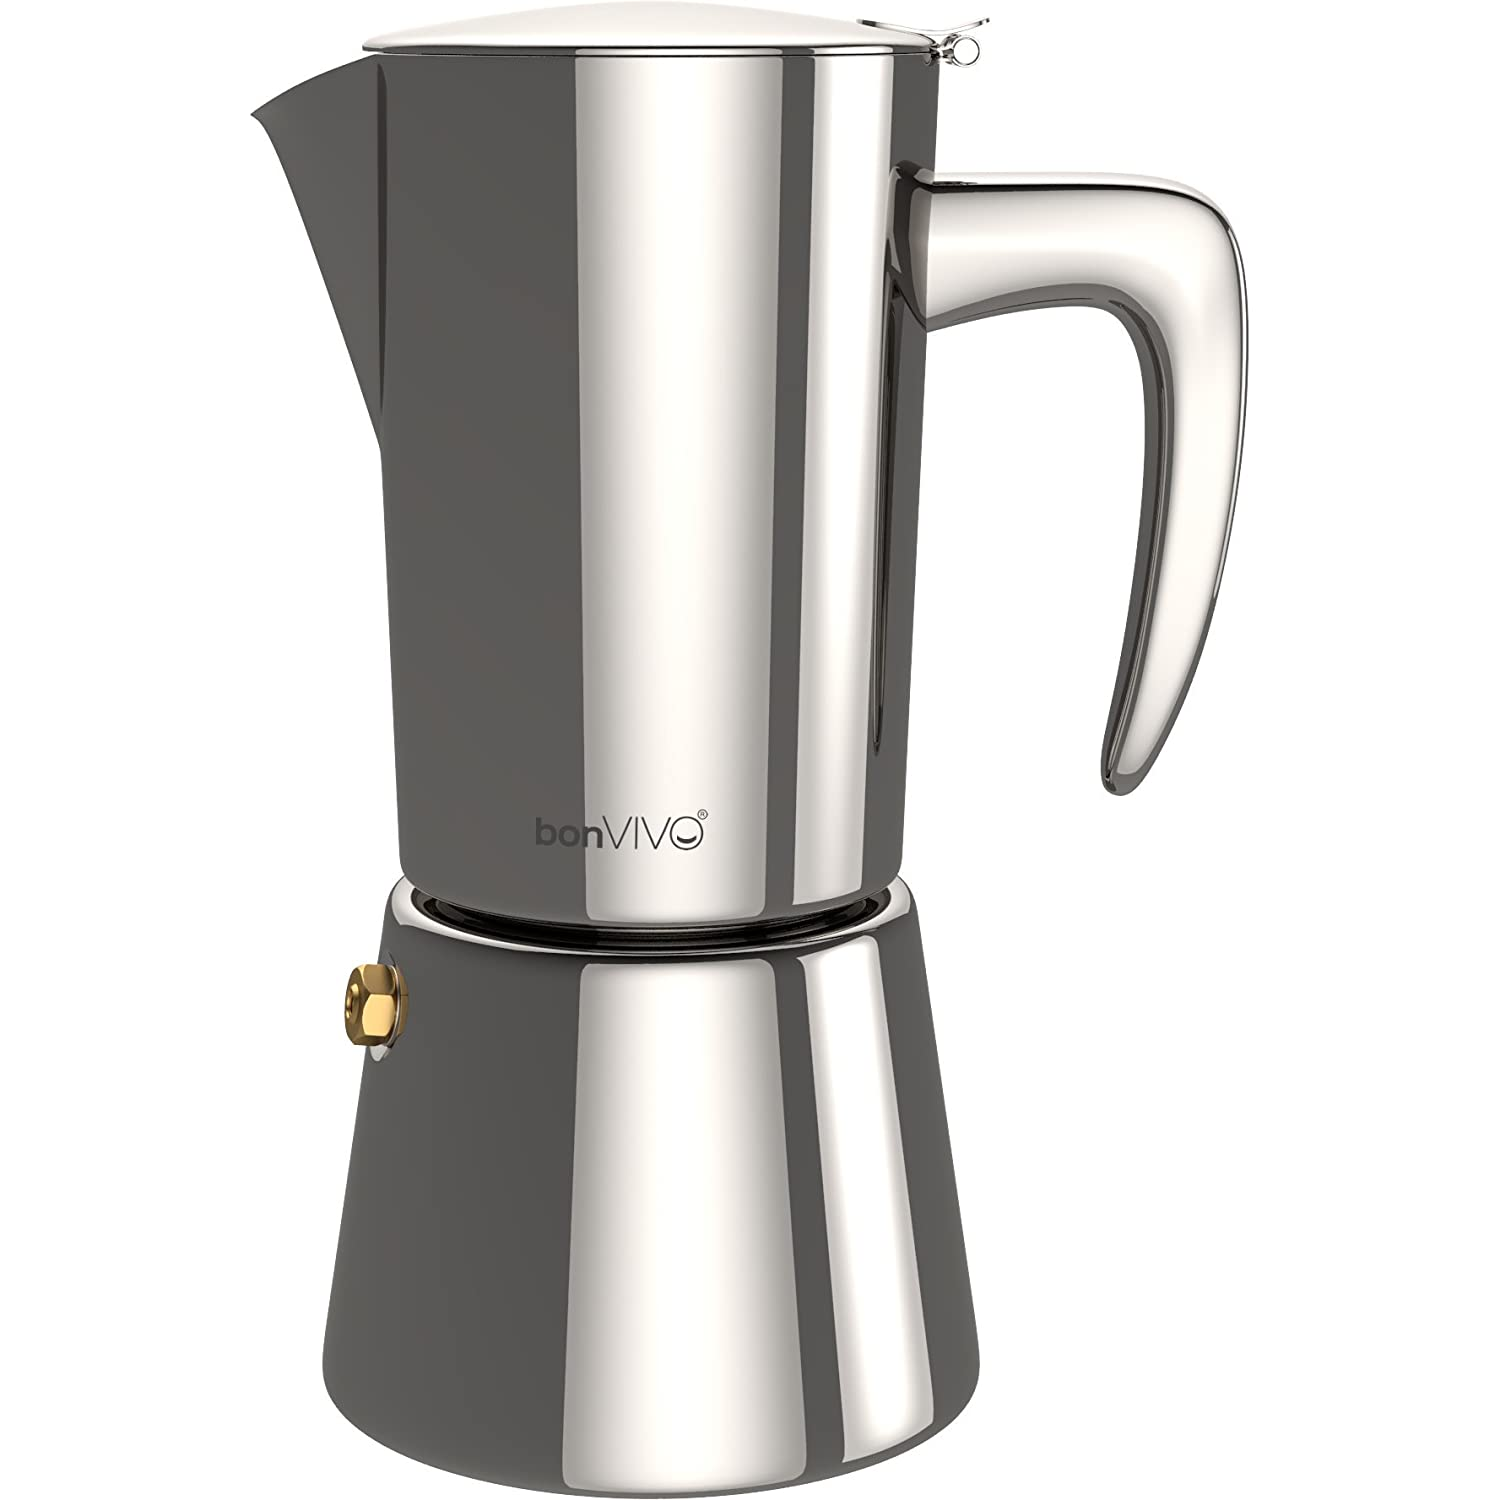 bonVIVO Intenca Stovetop Espresso Maker, Italian Espresso Coffee Maker, Stainless Steel Espresso Maker Machine For Full Bodied Coffee, Espresso Pot For 5-6 Cups, Moka Pot With Silver Chrome Finish